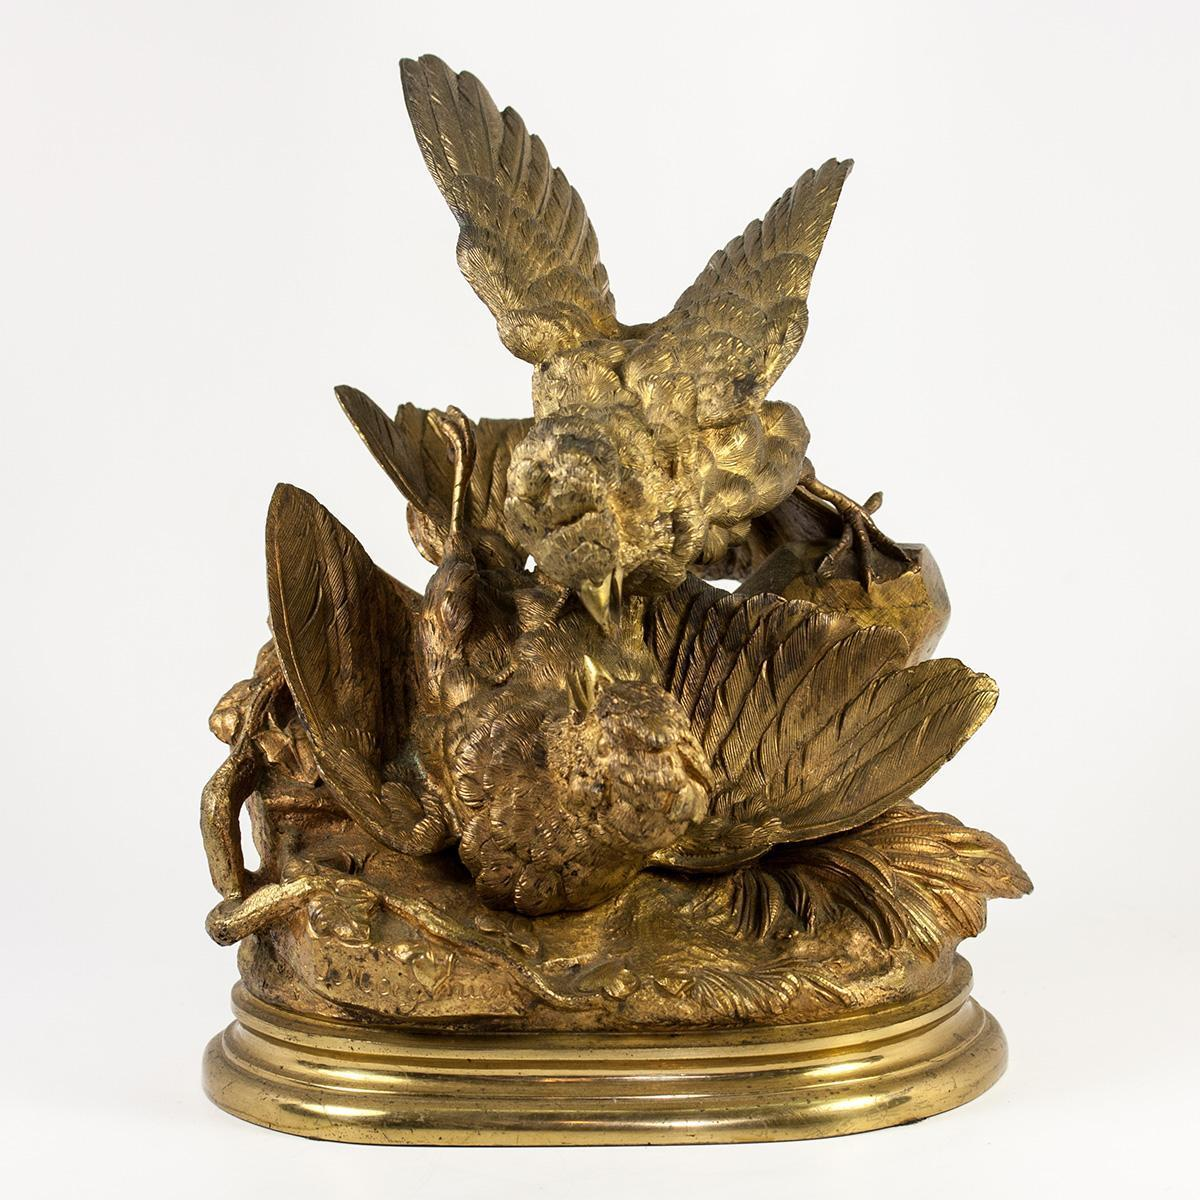 Antique Solid Bronze Moigniez Signed Sculpture, c.1880